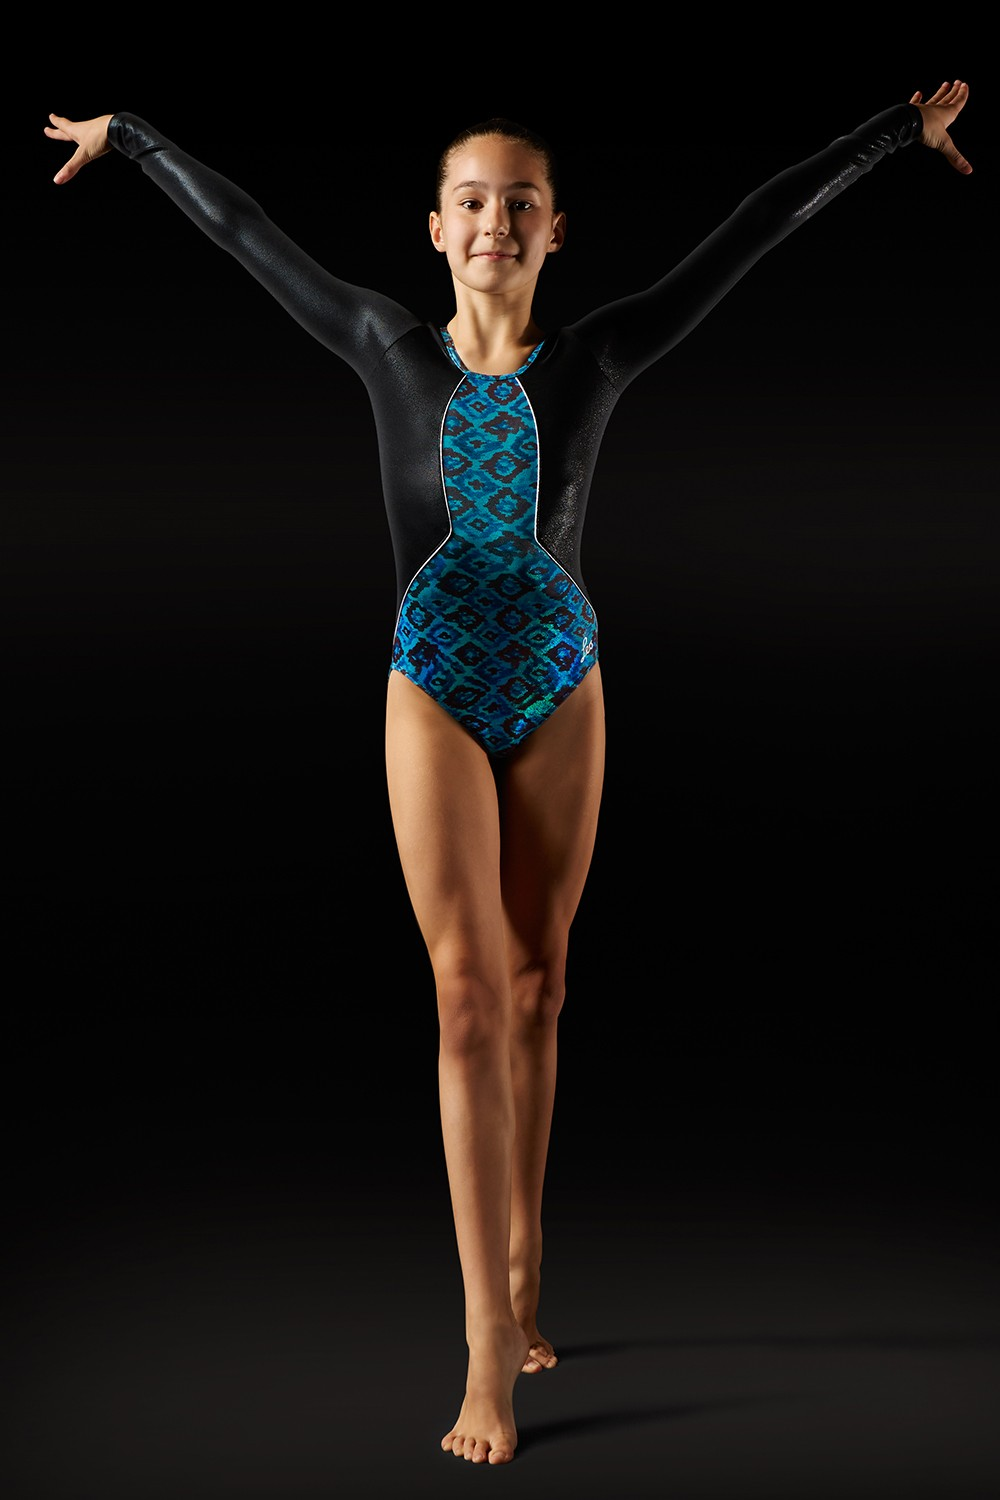 Aztec Print Leotard   Women's Gymnastics Leotards